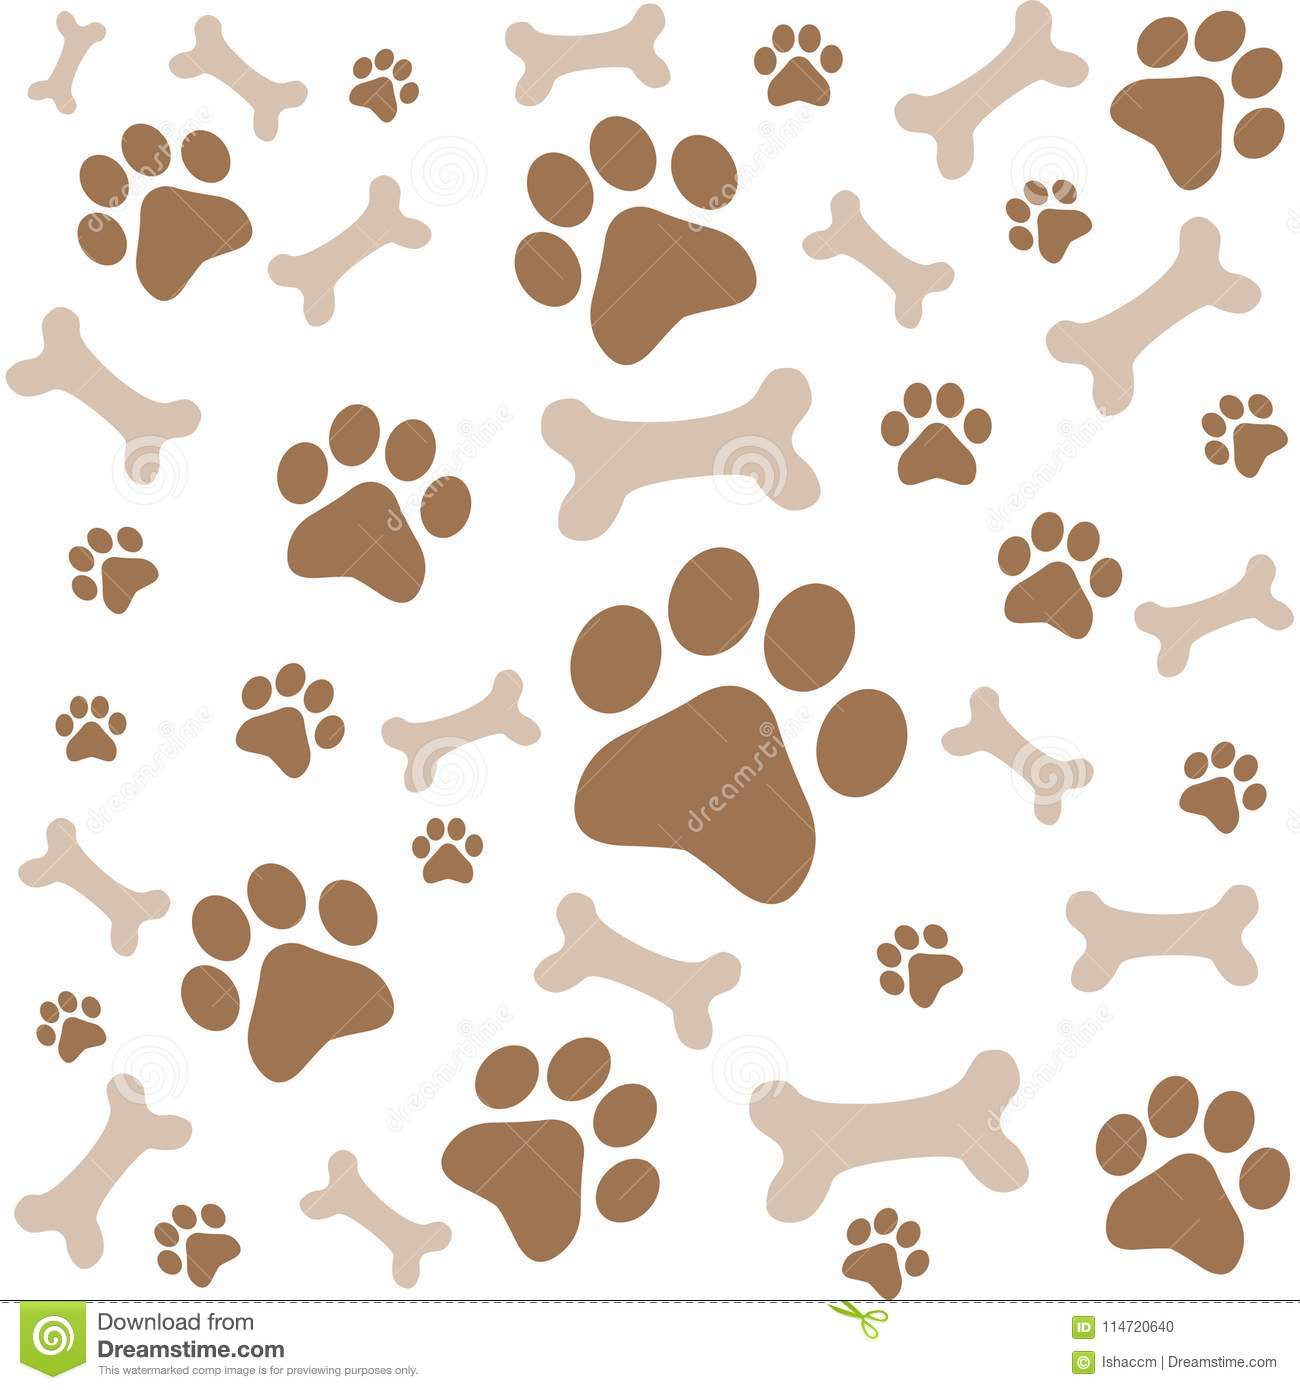 eac8a22b2342 Animal foot print vector background.Animal pattern. More similar stock  illustrations. Hand doodle seamless pattern with bones, dog paw ...